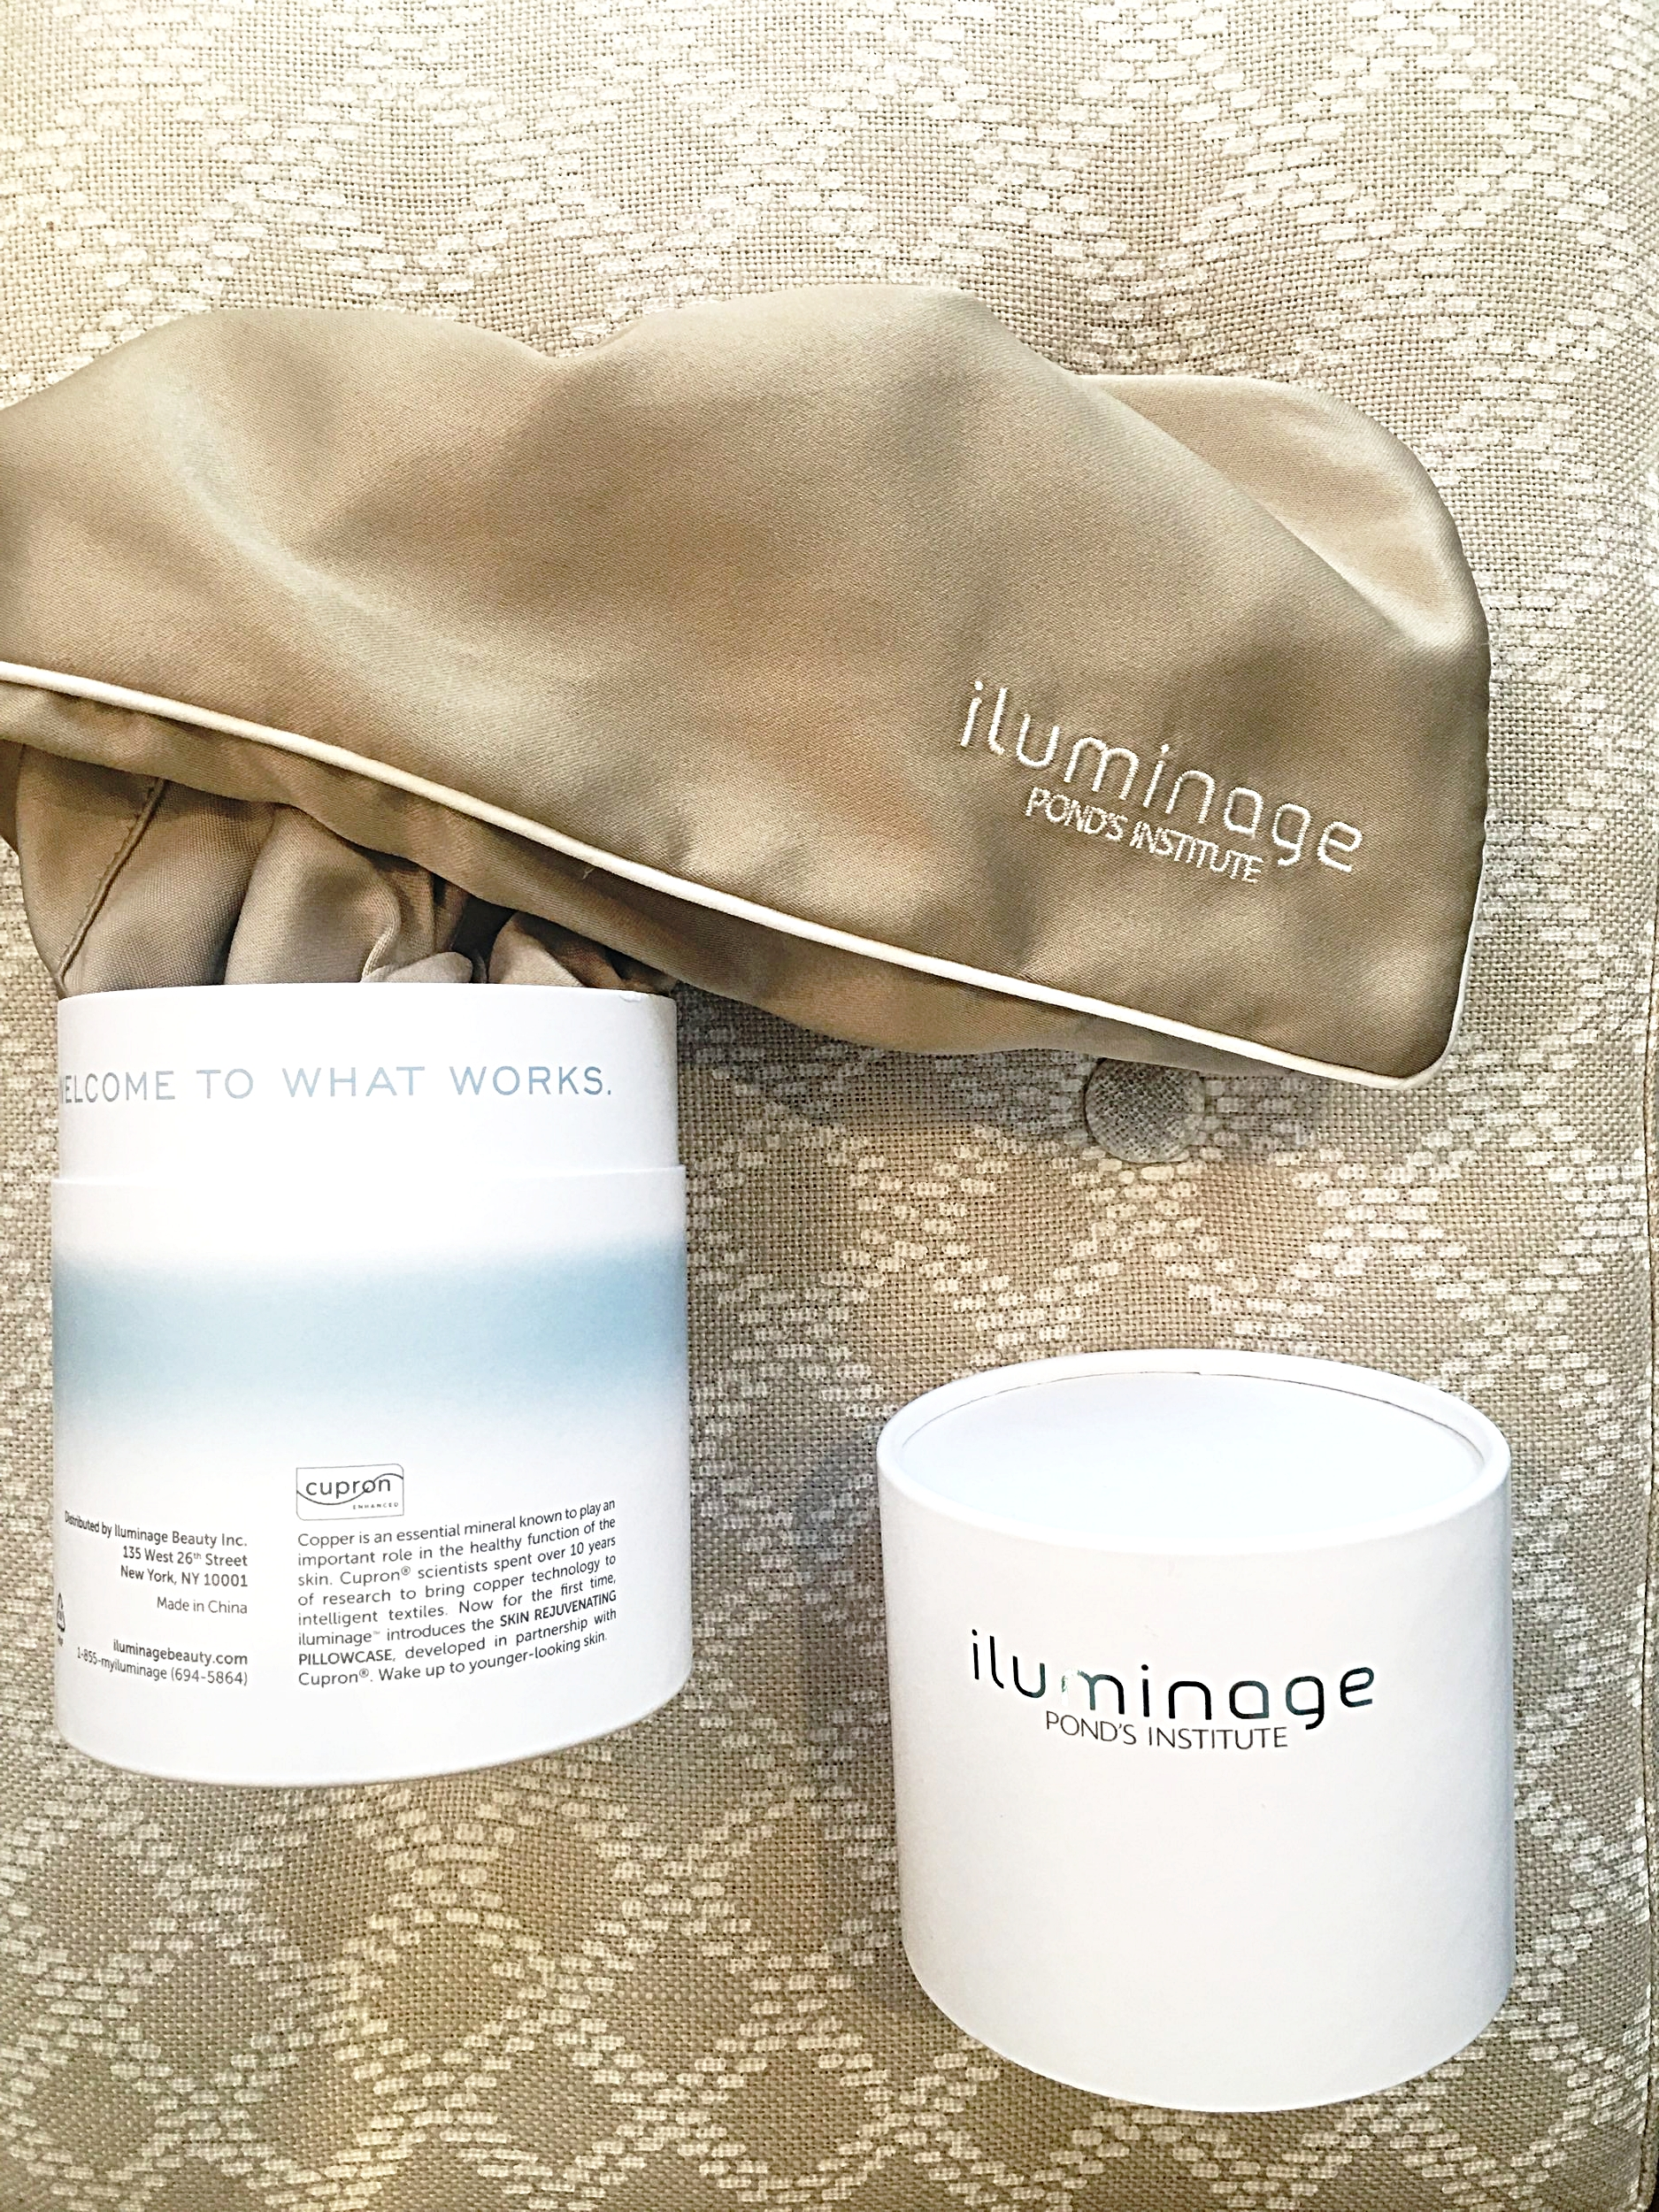 I received the    Illuminage pillow case    as a hostess gift and I love it! Loaded with lots of copper oxide, it is proven to diminish the appearance of fine lines and wrinkles in up to 4 weeks. I love the way it feels against my skin and hair. It was one of the best gifts I ever received!